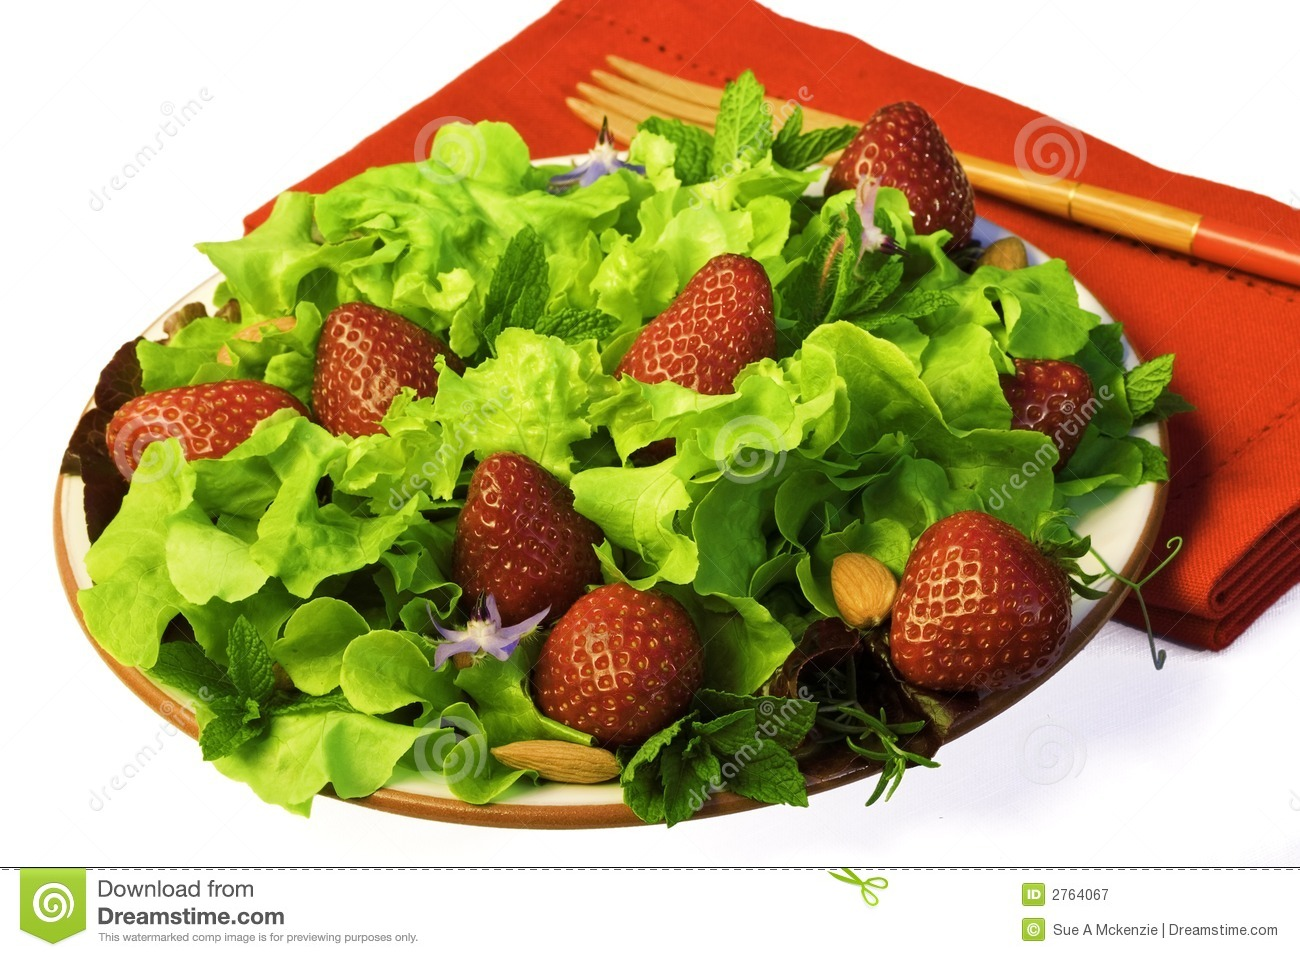 Royalty Free Stock Photography: Summer Salad with Strawberries